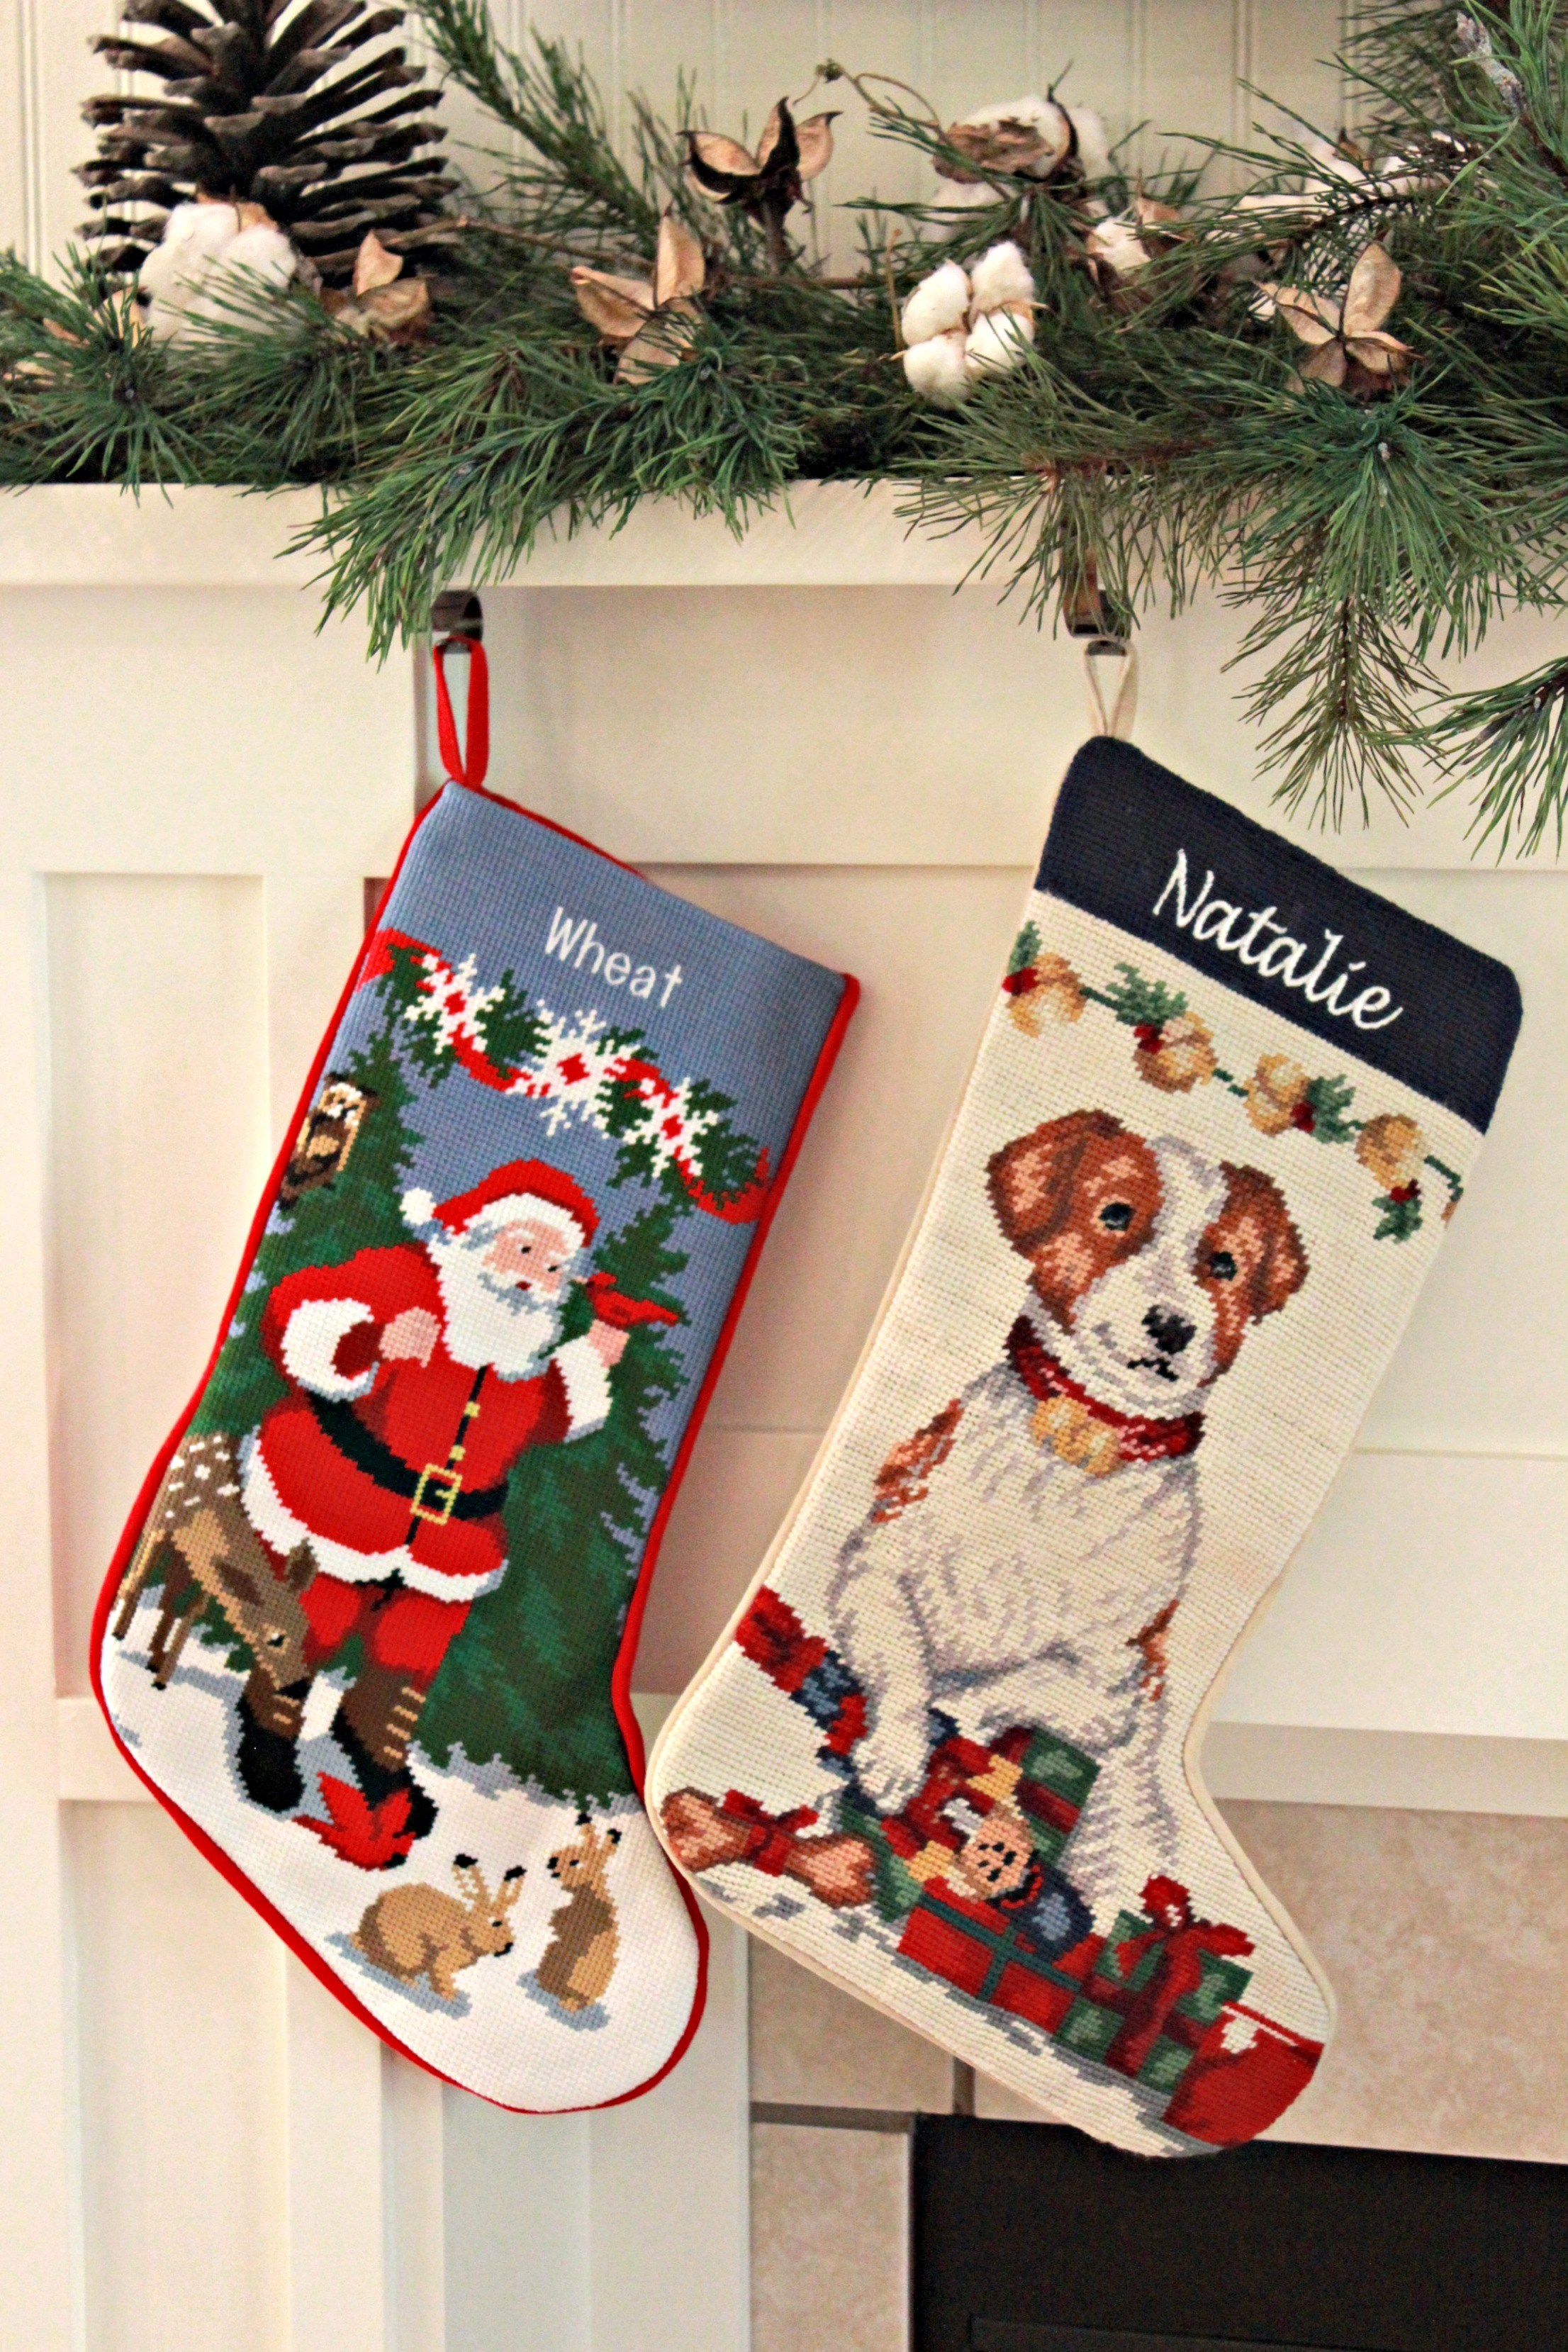 Entrancing needlepoint stockings and fireplace with mantle shelves in the christmas day